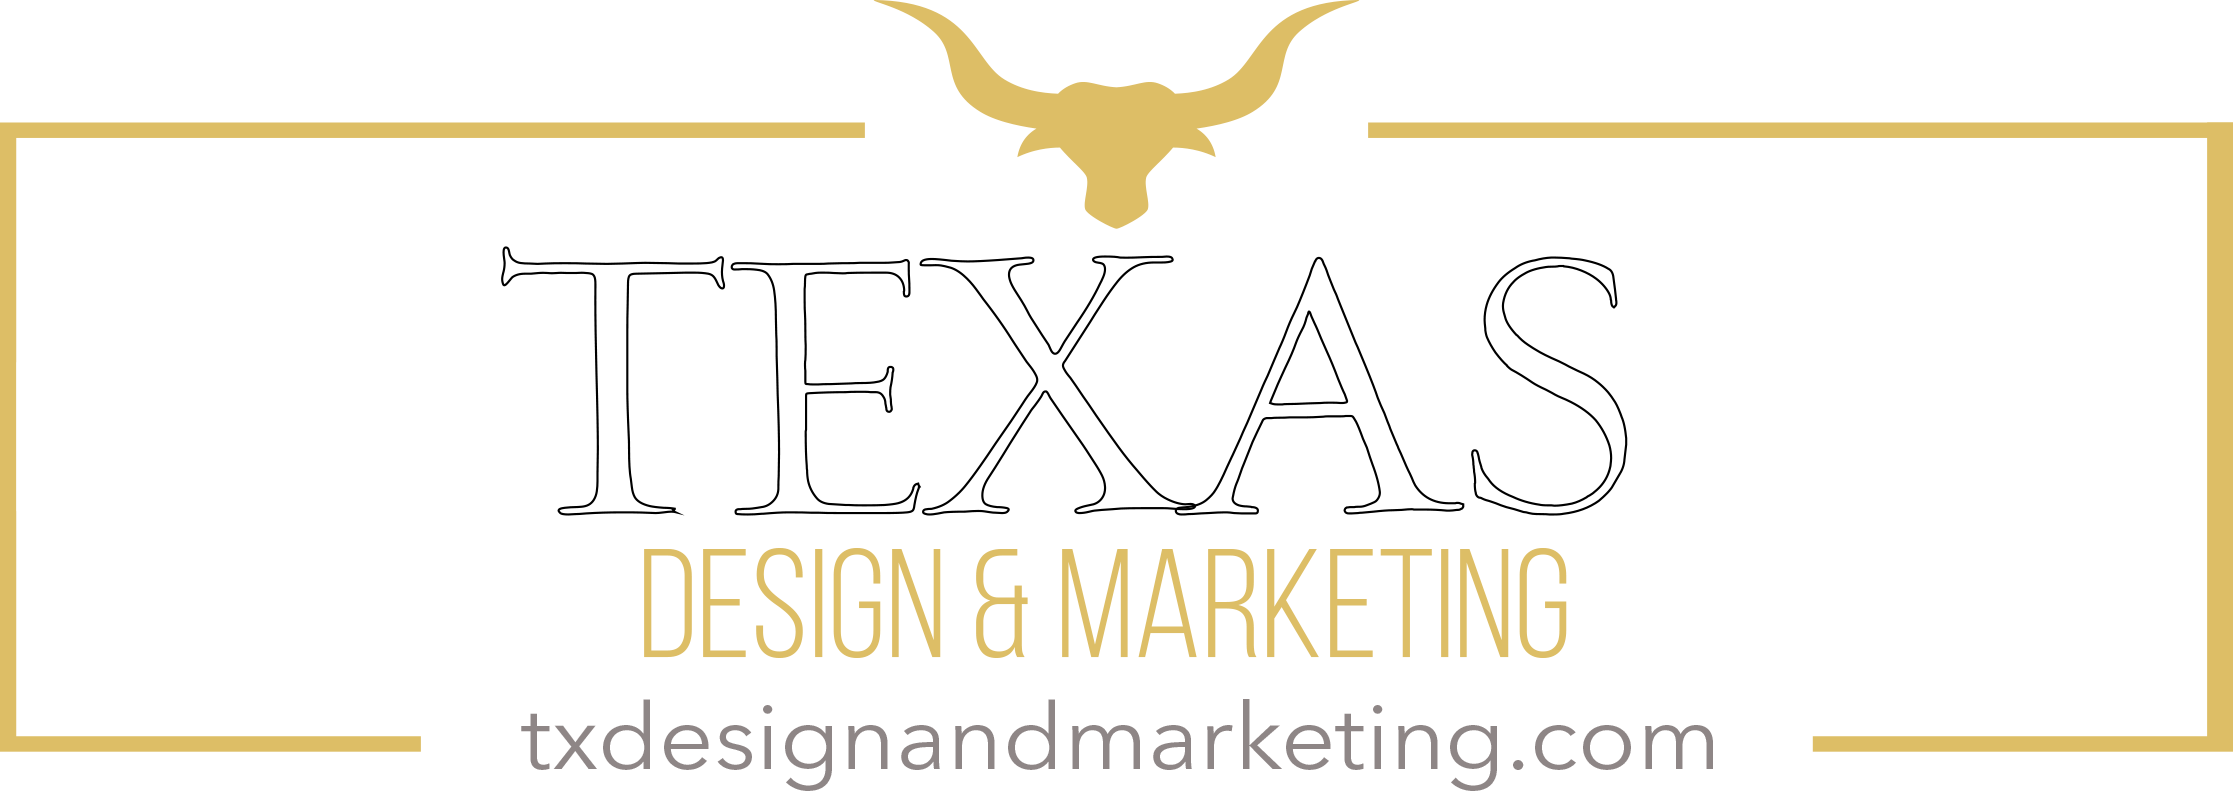 Texas Design & Marketing